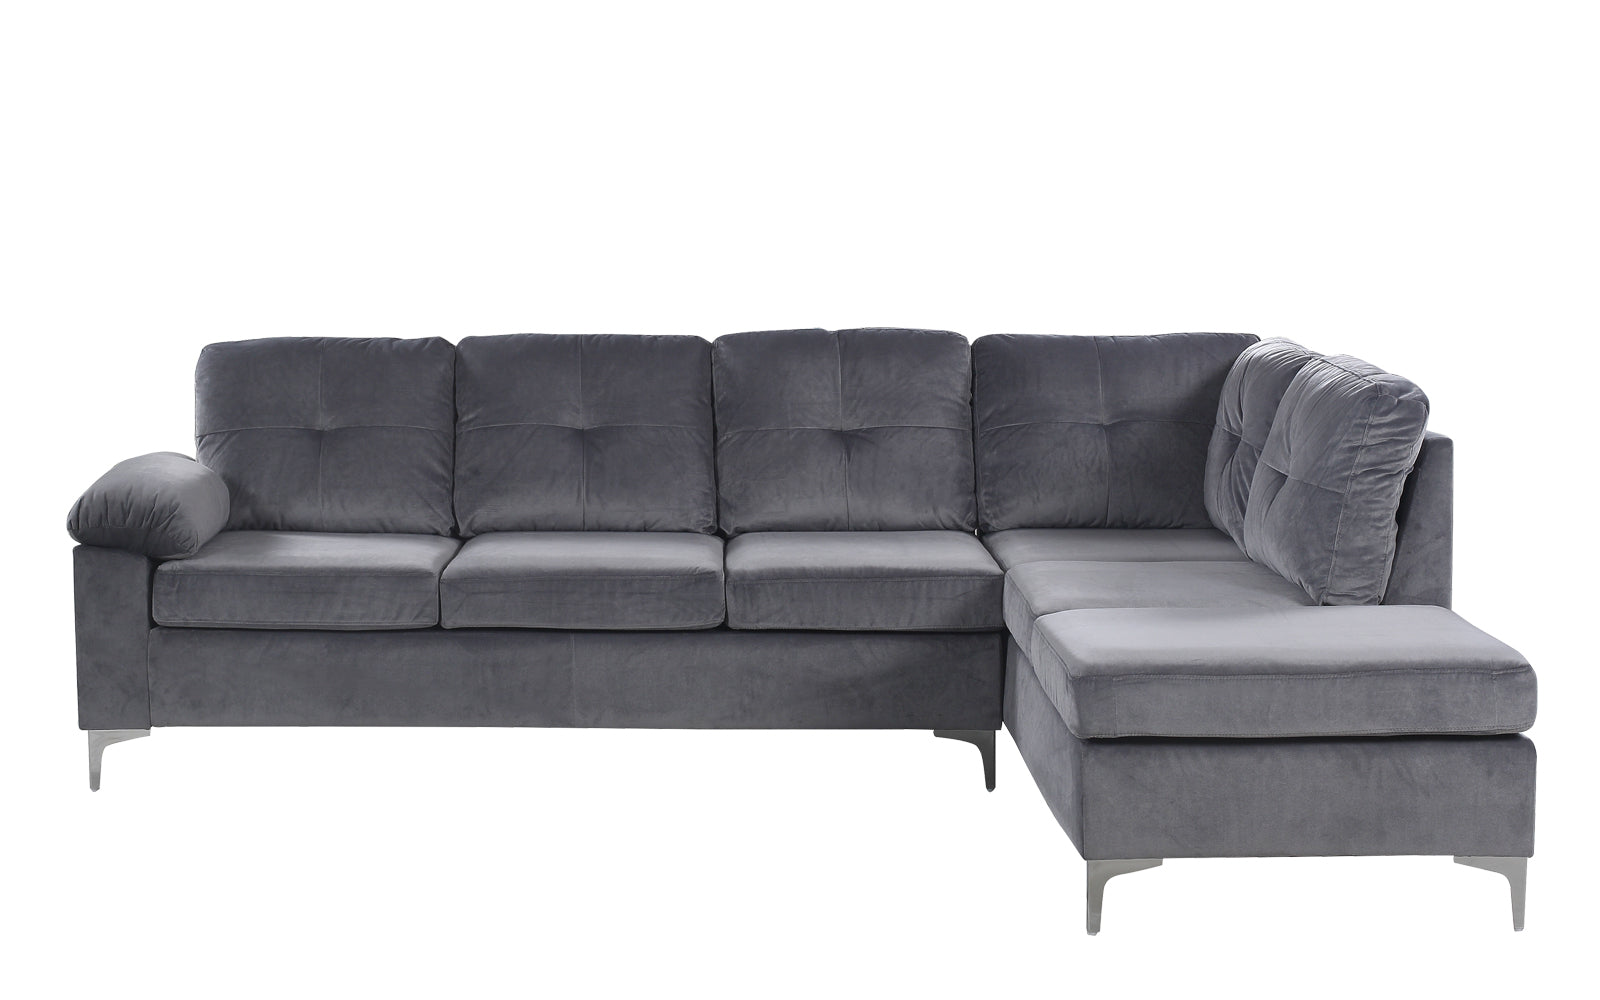 Helsinki modern tufted brush microfiber sectional sofa for Microfiber sectional sofa